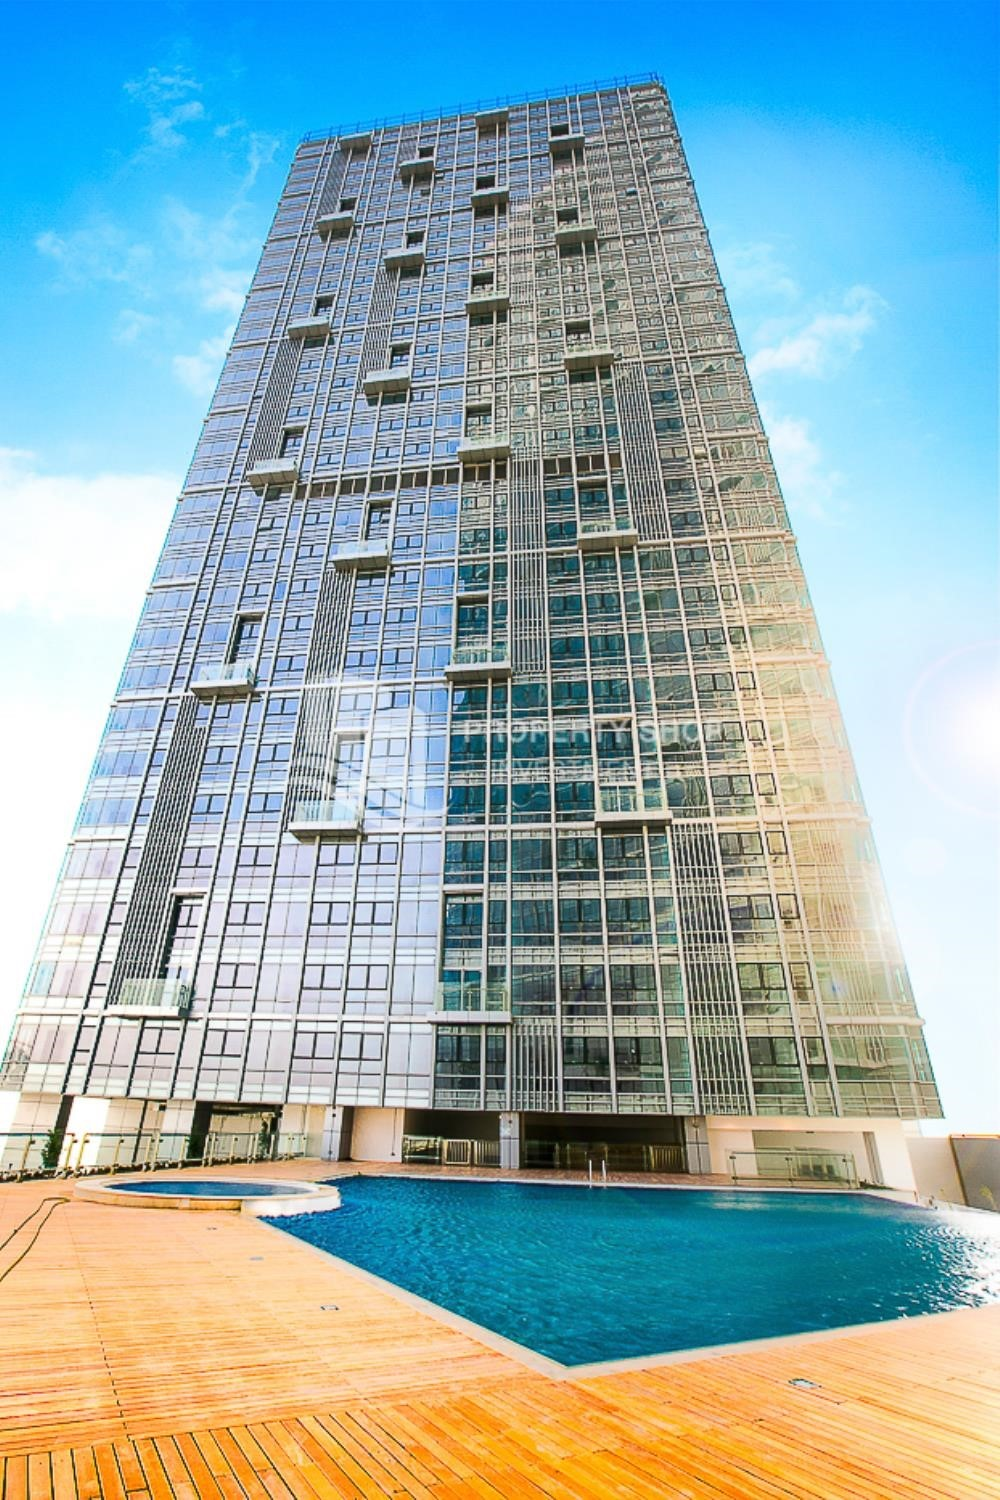 Property - Horizon Towers 1 Bedroom Apartment for rent in Al Reem Island